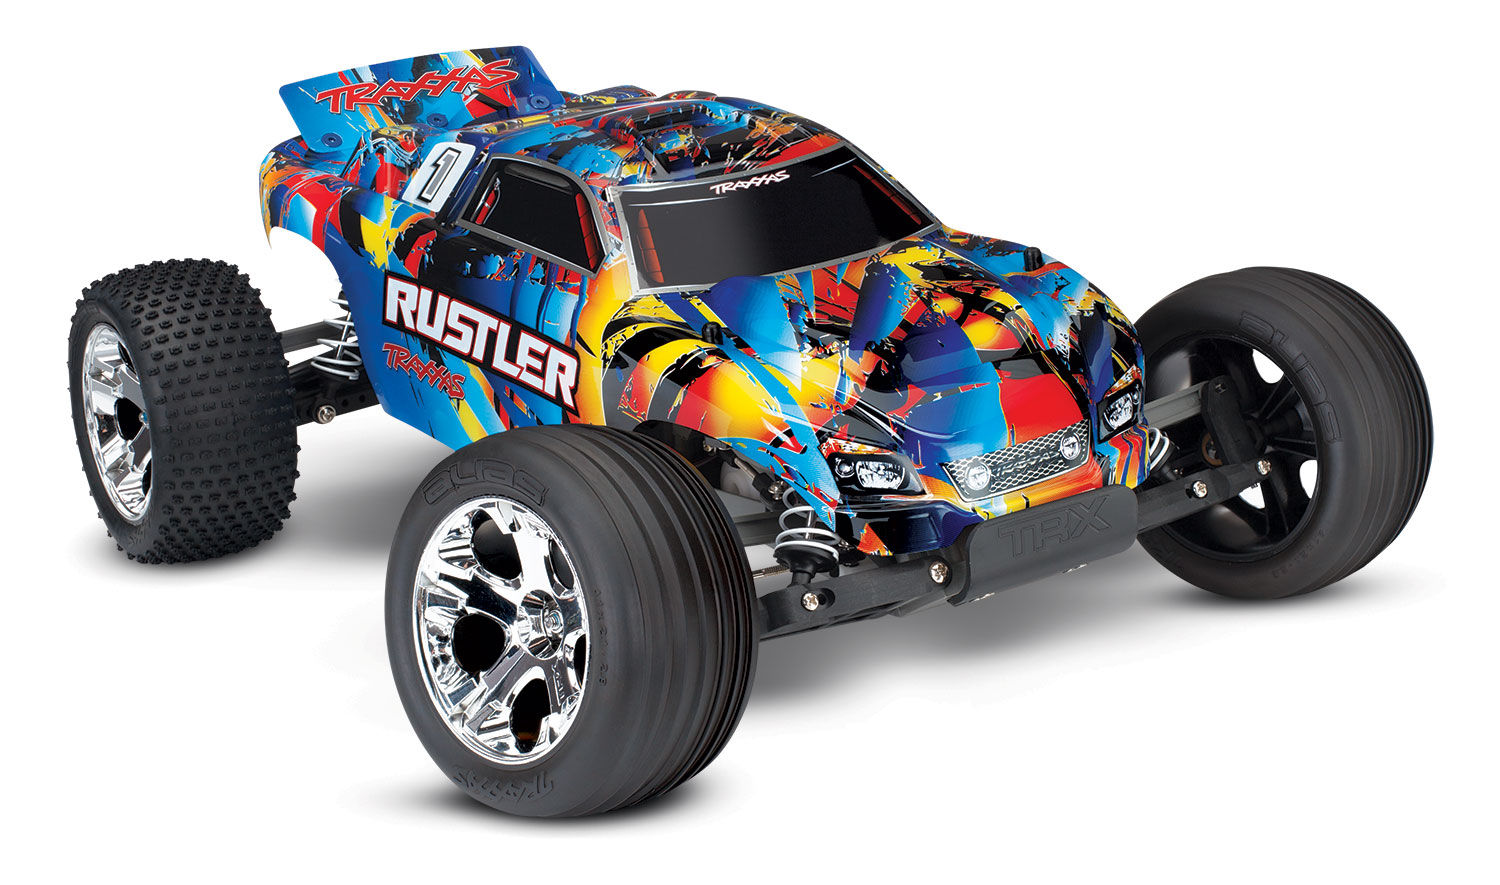 Traxxas Bandit Amp Rustler New Look Lower Price Video Rc Car Action